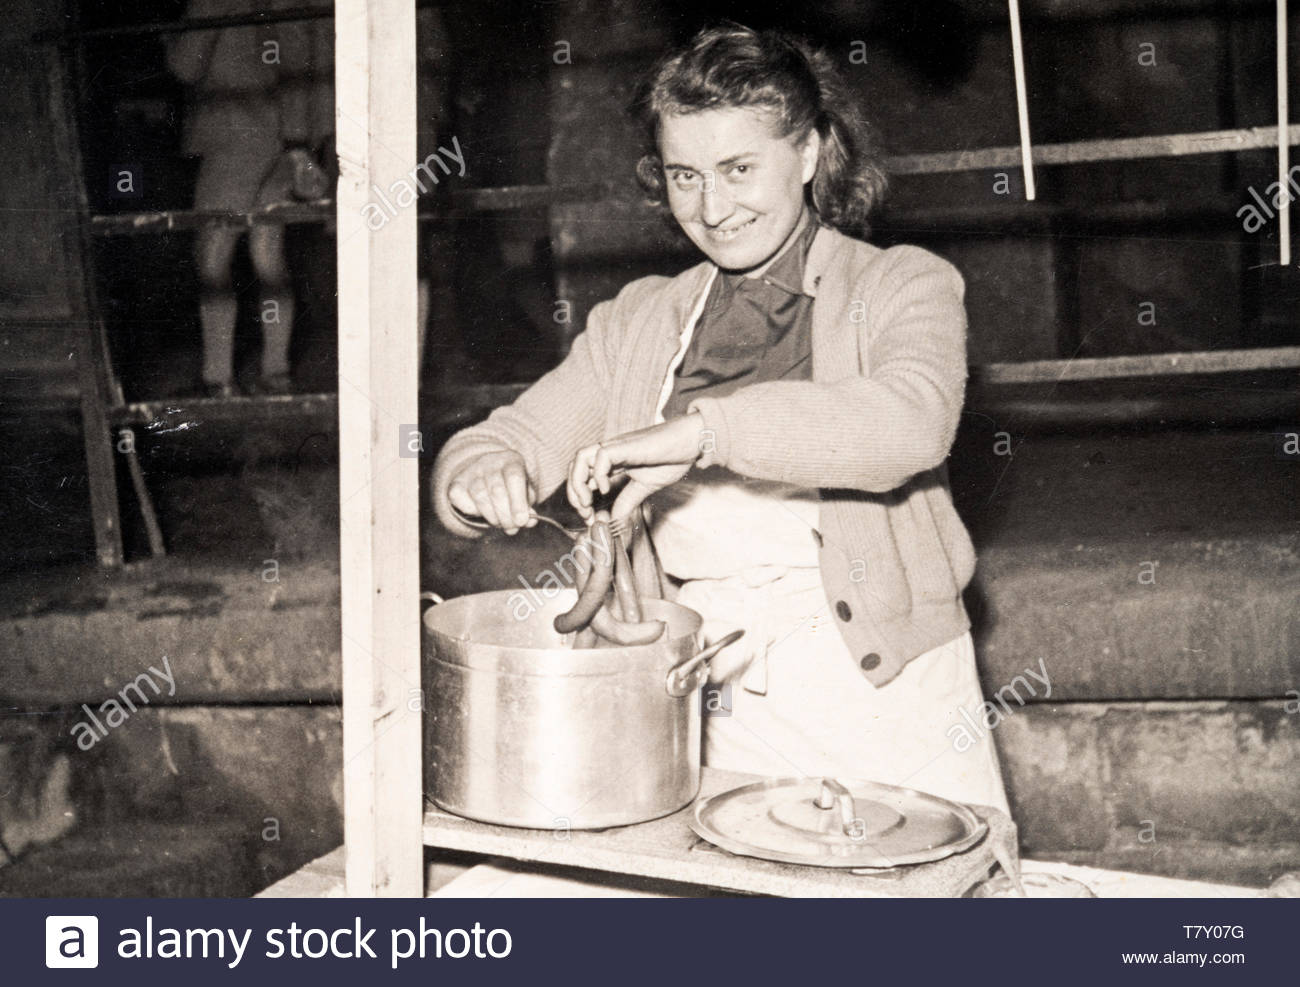 cooking saucages in a big pot France ca 1950s - Stock Image